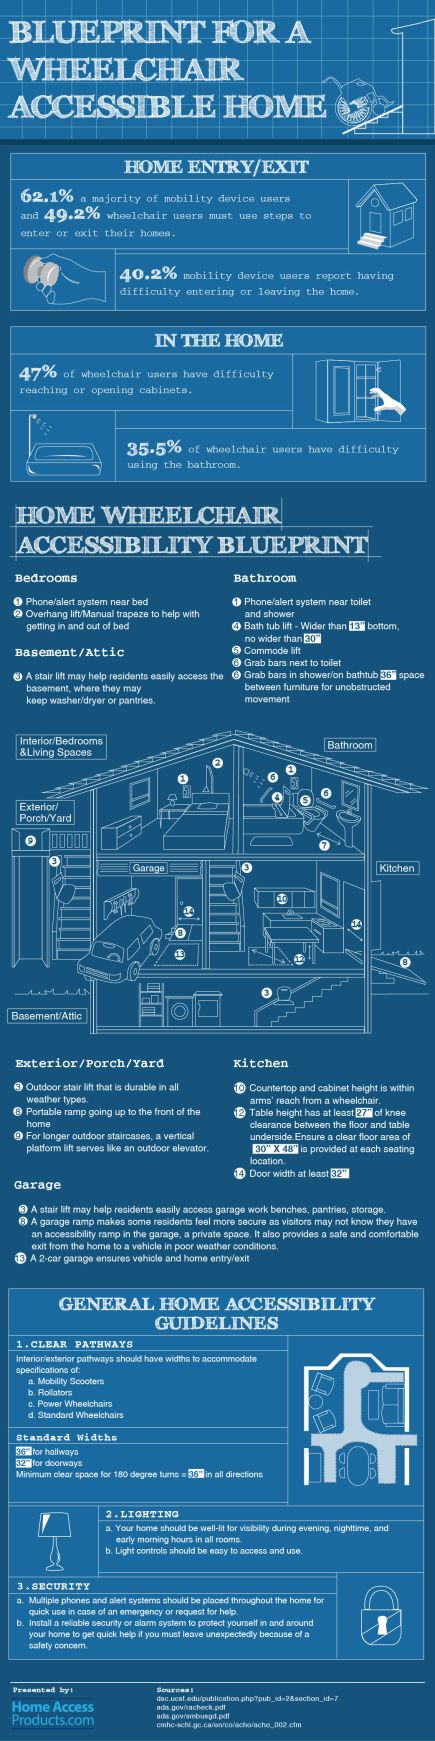 Blueprint for a wheelchair accessible home infographic pinterest blueprint for a wheelchair accessible home infographic two classy chics malvernweather Images